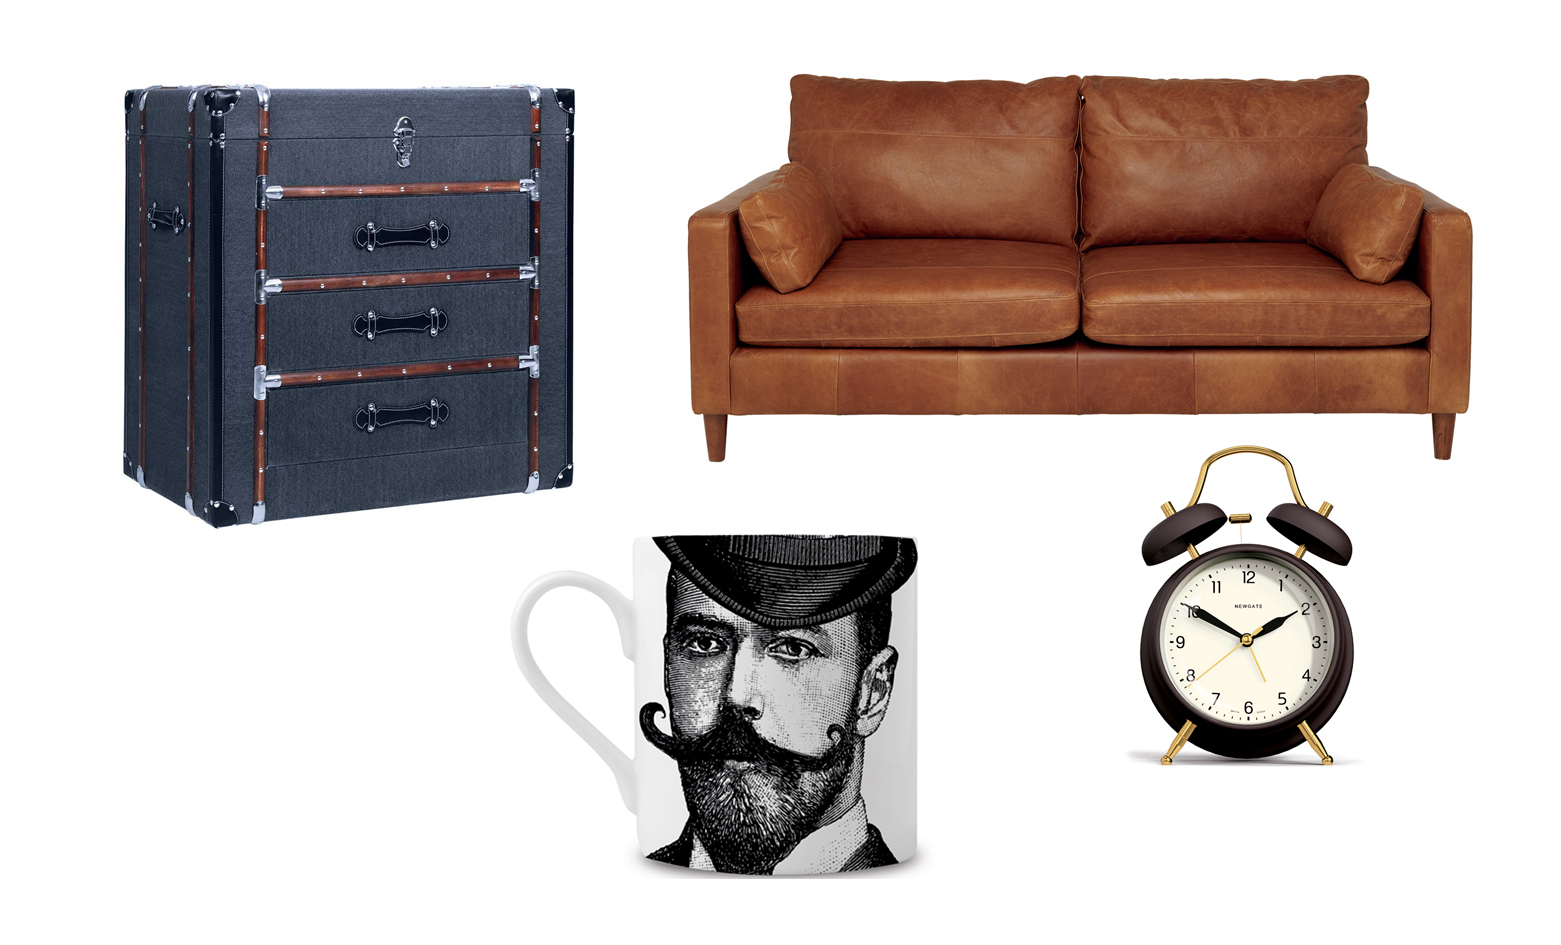 From top left: Colonia Chest of Drawers, Hutsly; Hendrix Stowe tan leather sofa, Marks & Spencer; The Brass Knocker Alarm Clock, Cotswold Trading; Dashing Gent Fine China Mug, Chase and Wonder